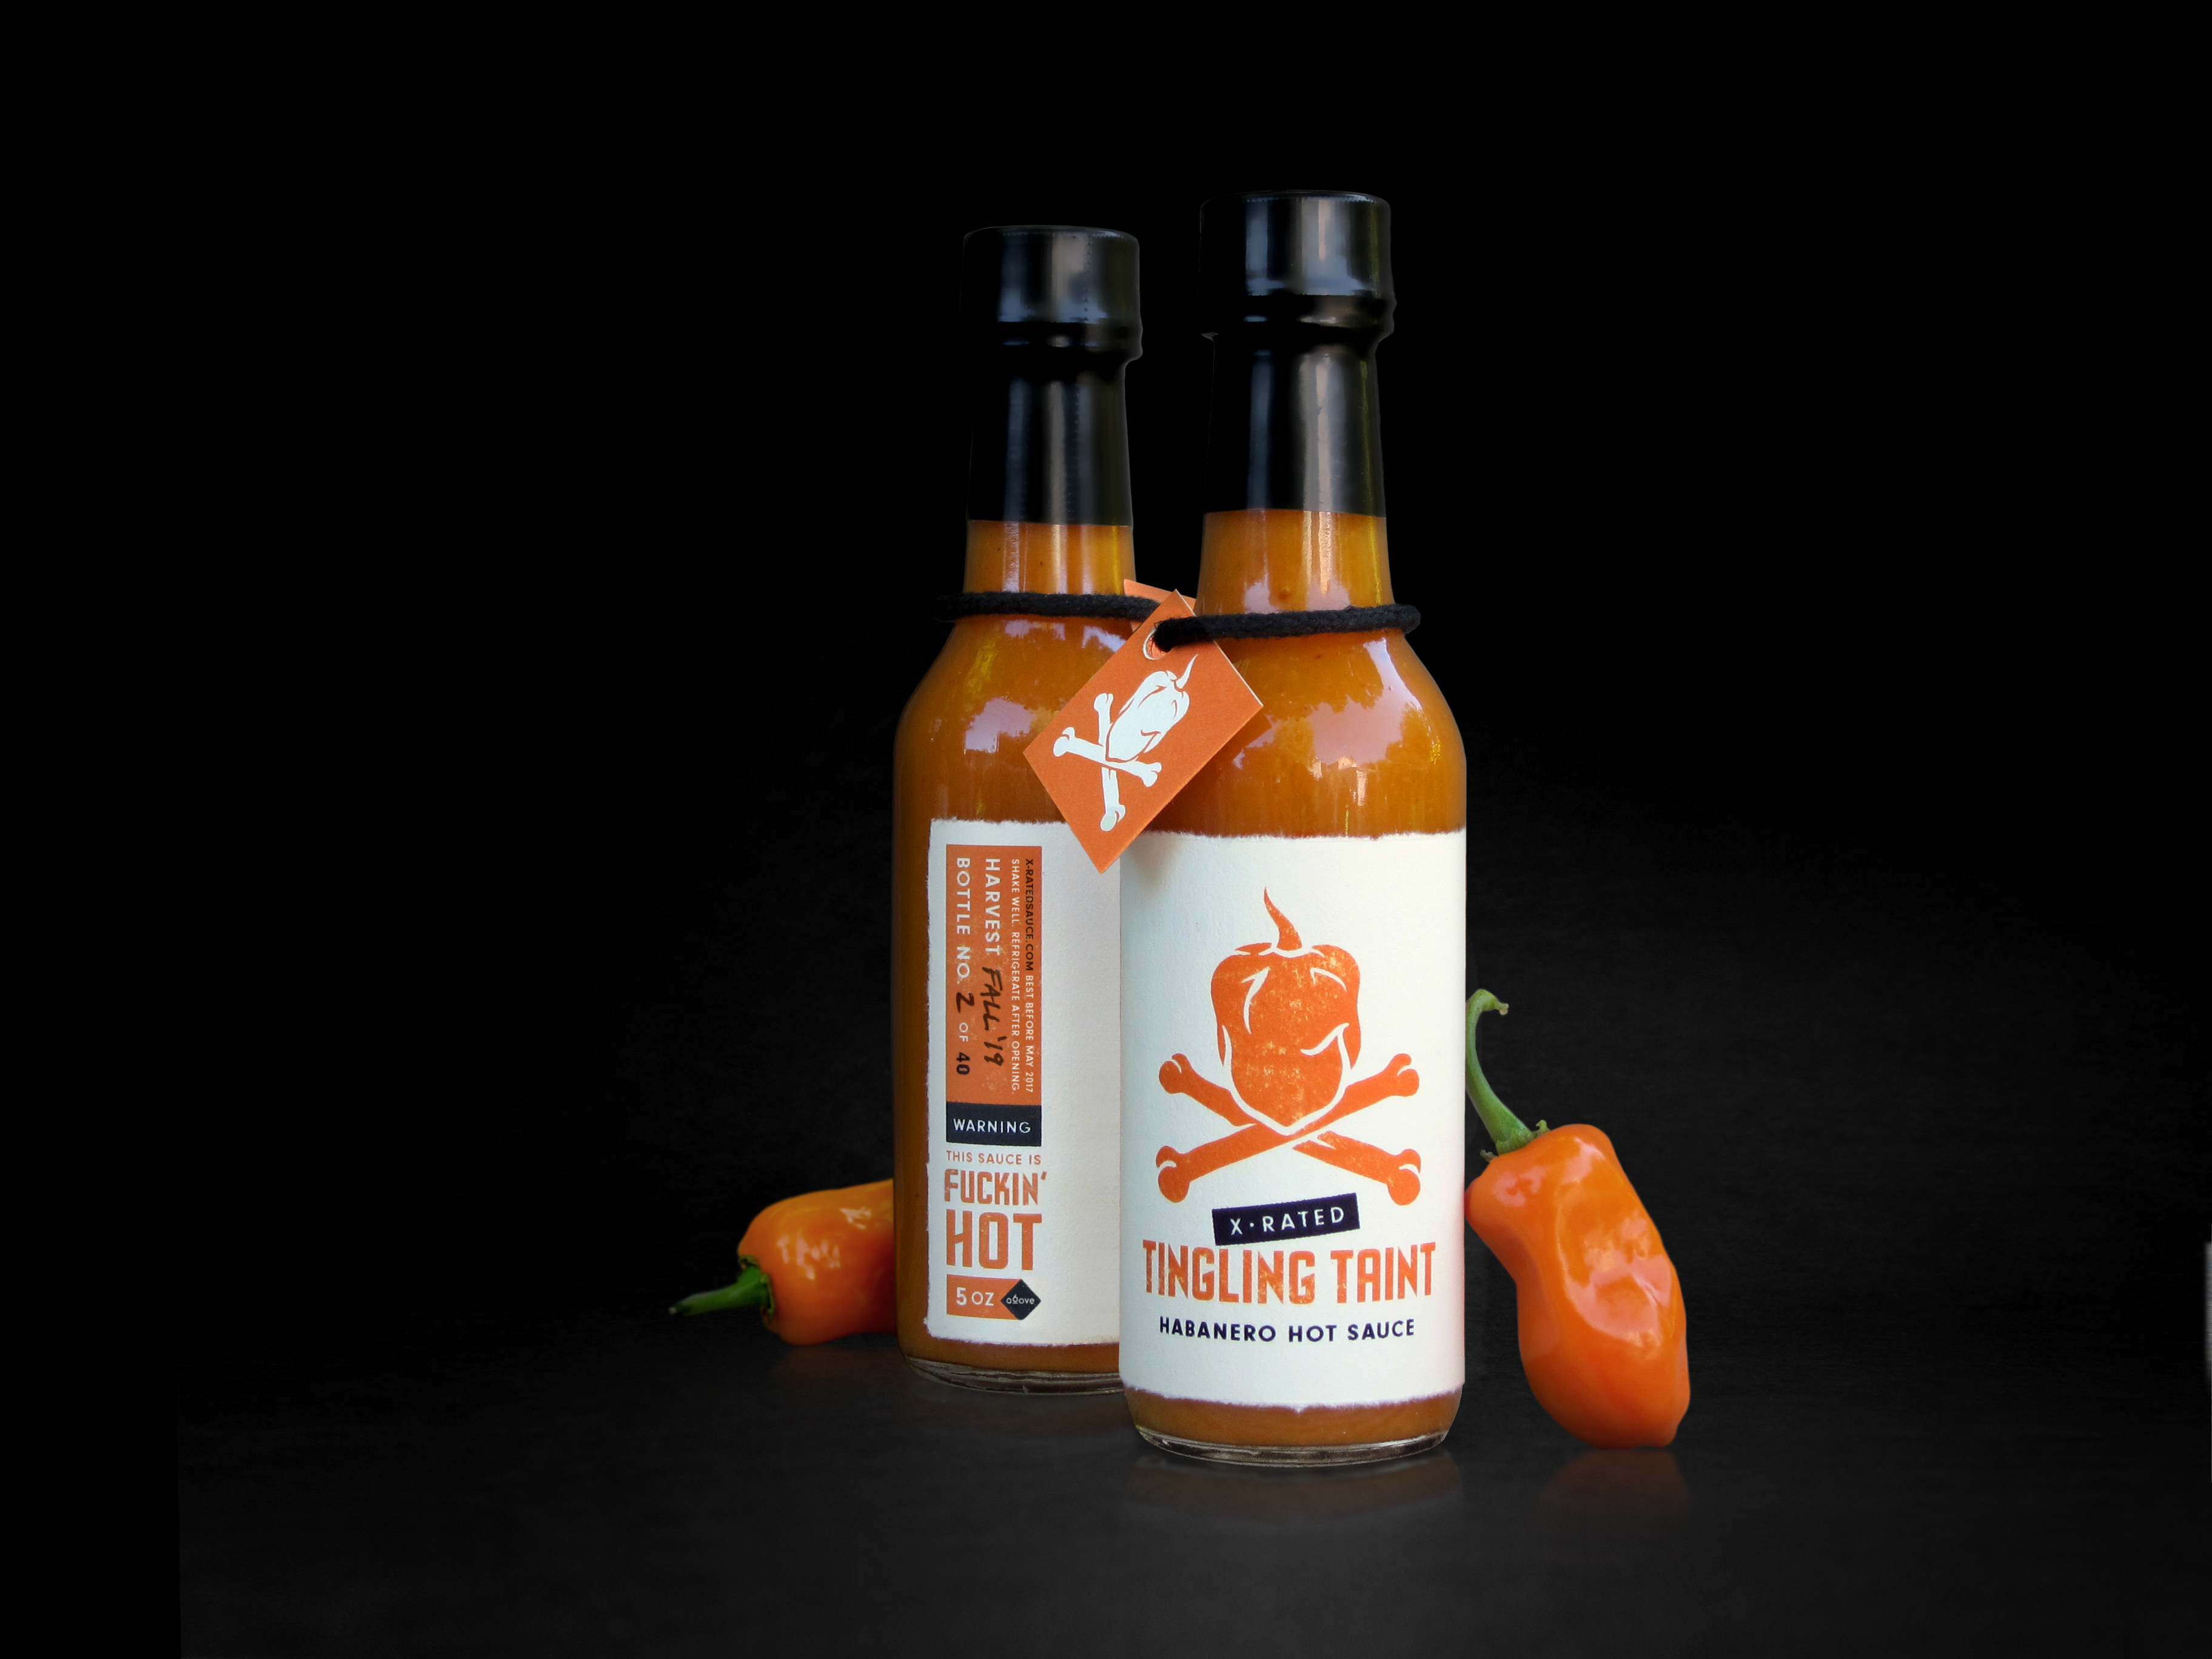 X-Rated Hot Sauce